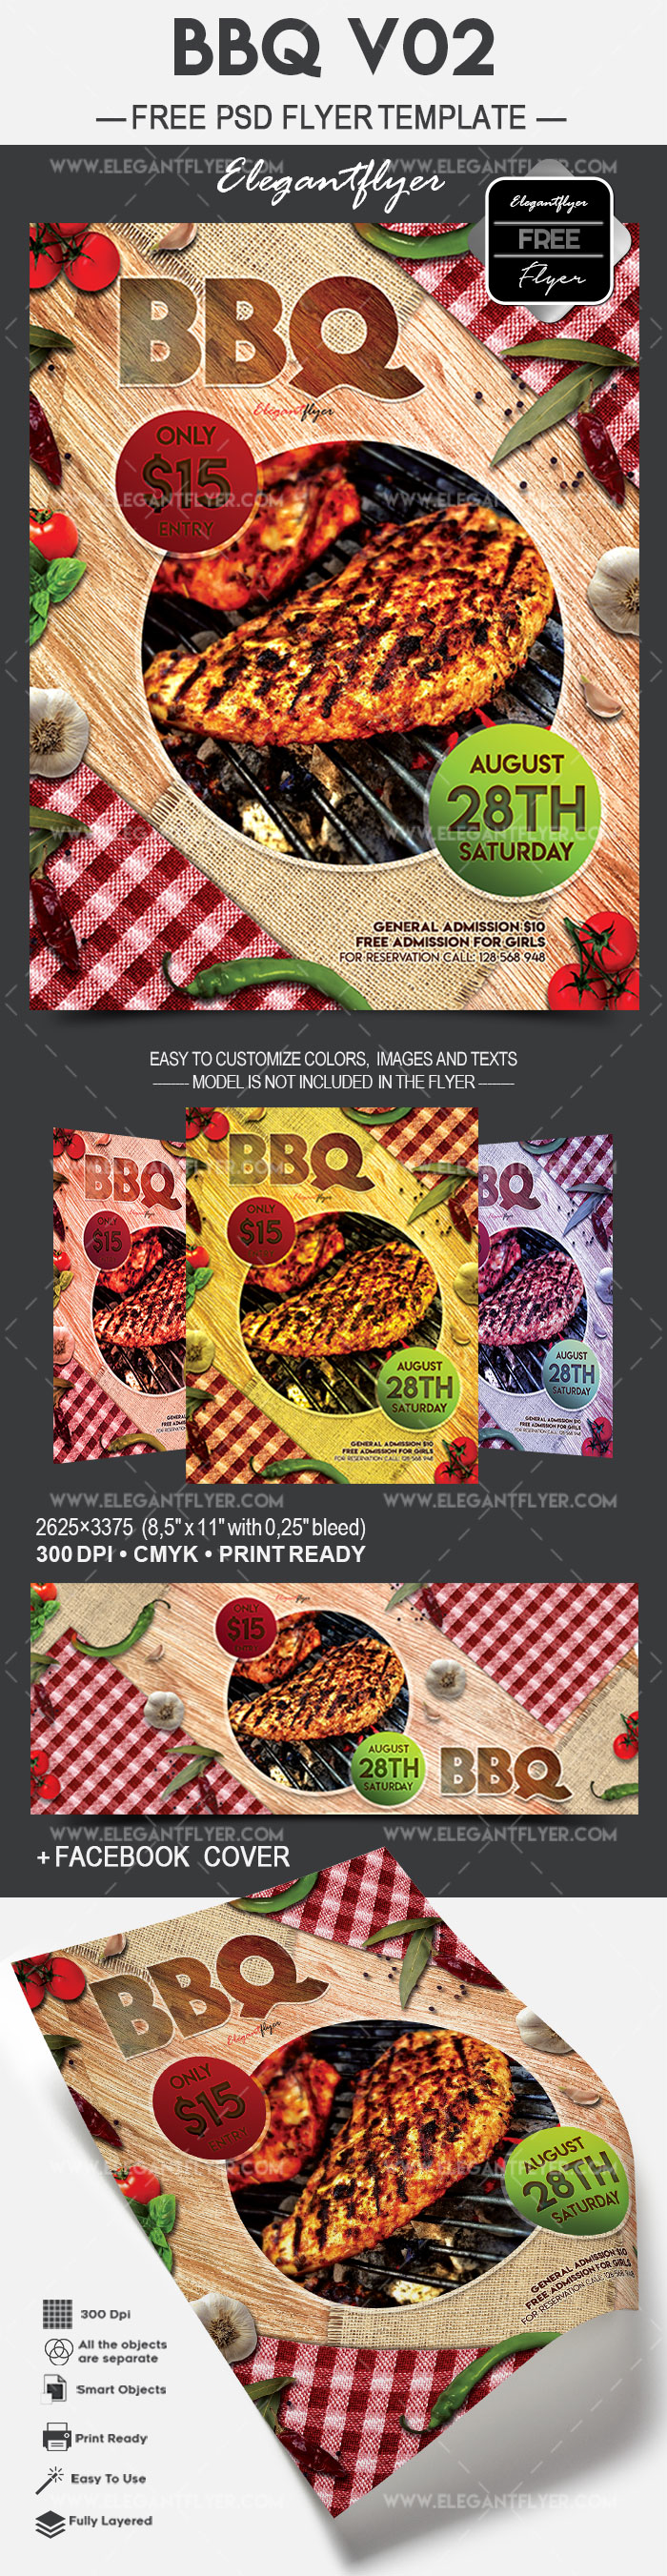 BBQ V02 – Free Flyer PSD Template